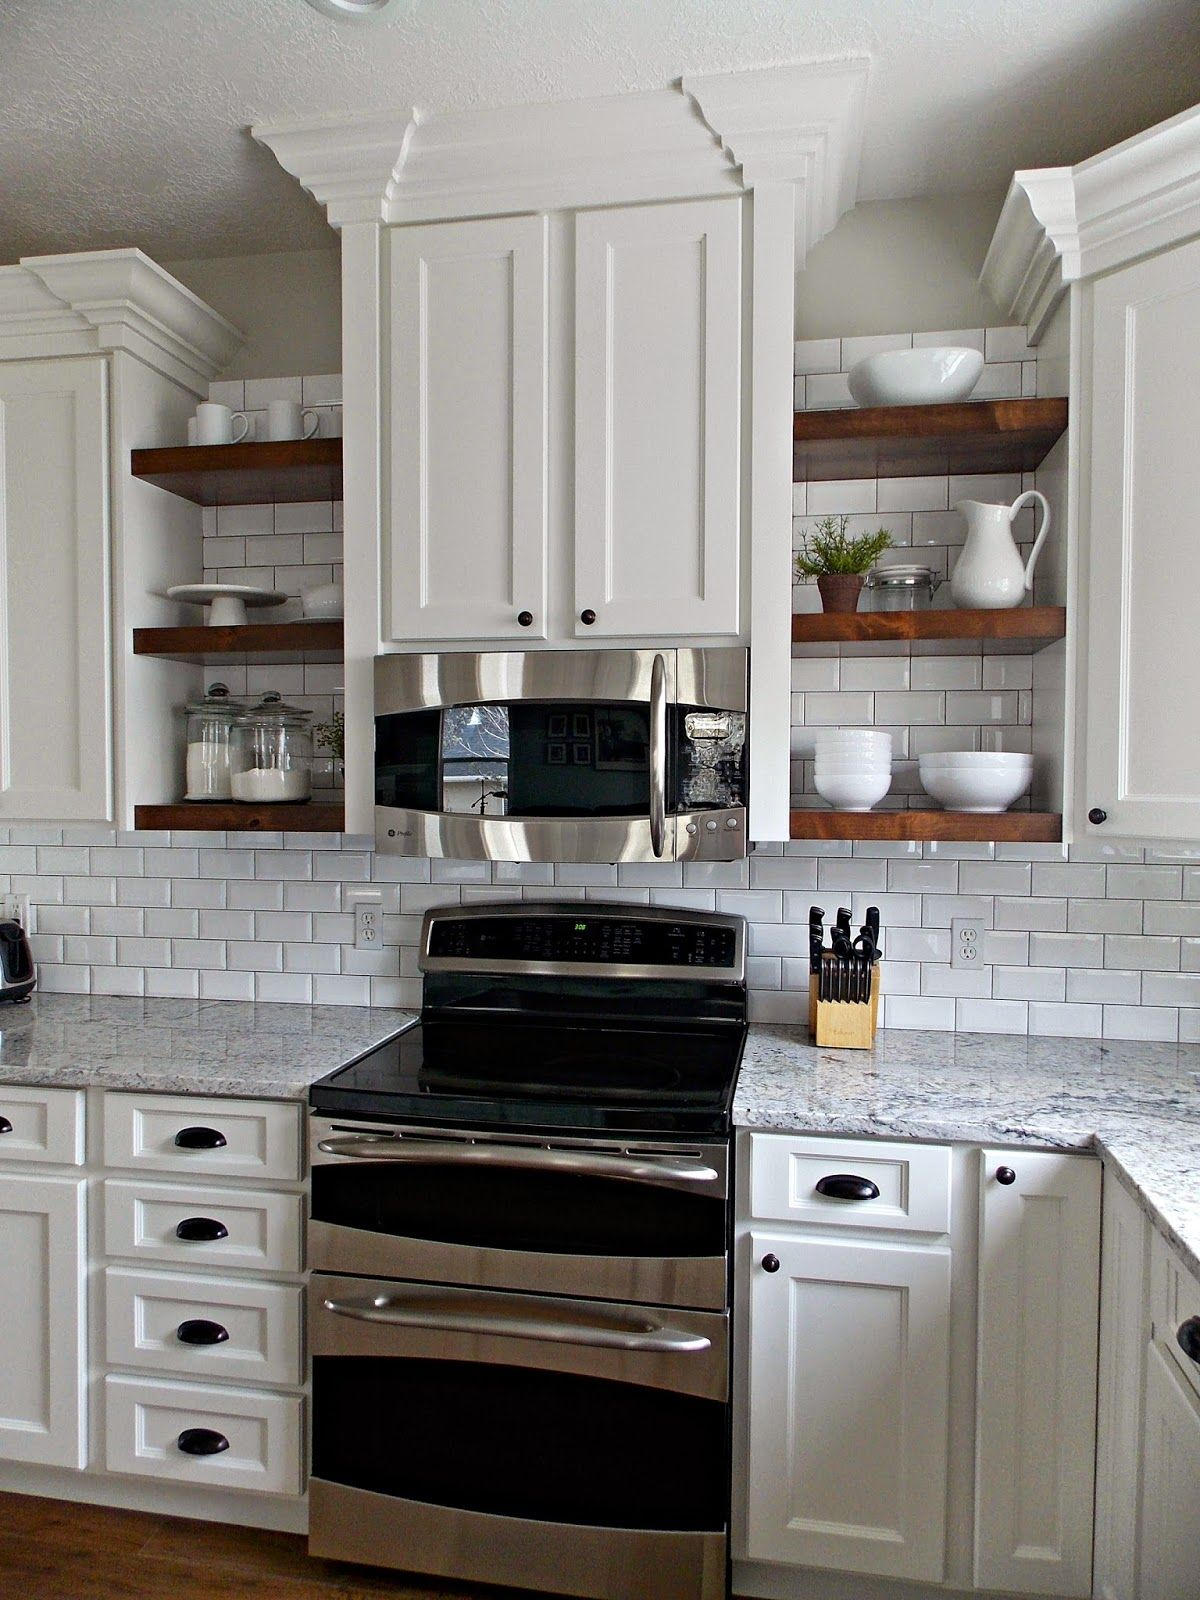 TDA decorating and design: Kitchen Before, During, & After ...